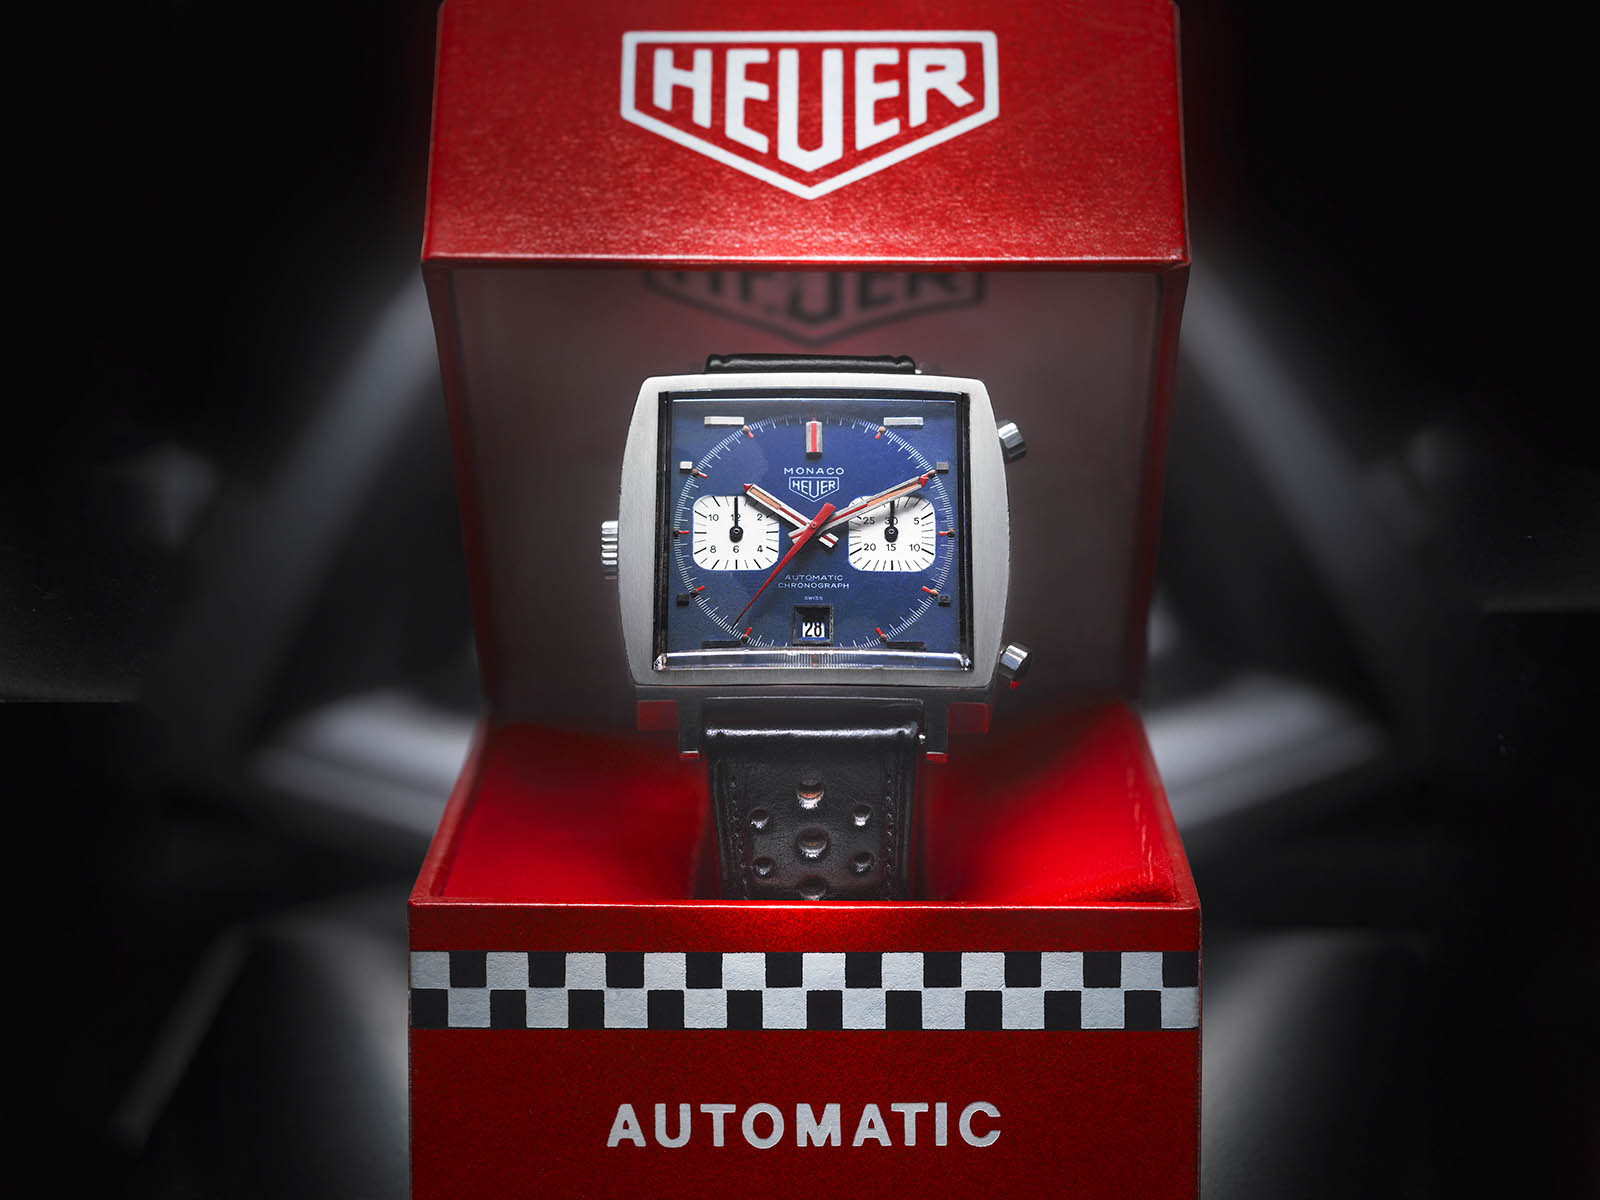 caw211w-fc6467-tag-heuer-1979-1989-limited-edition-2.jpg